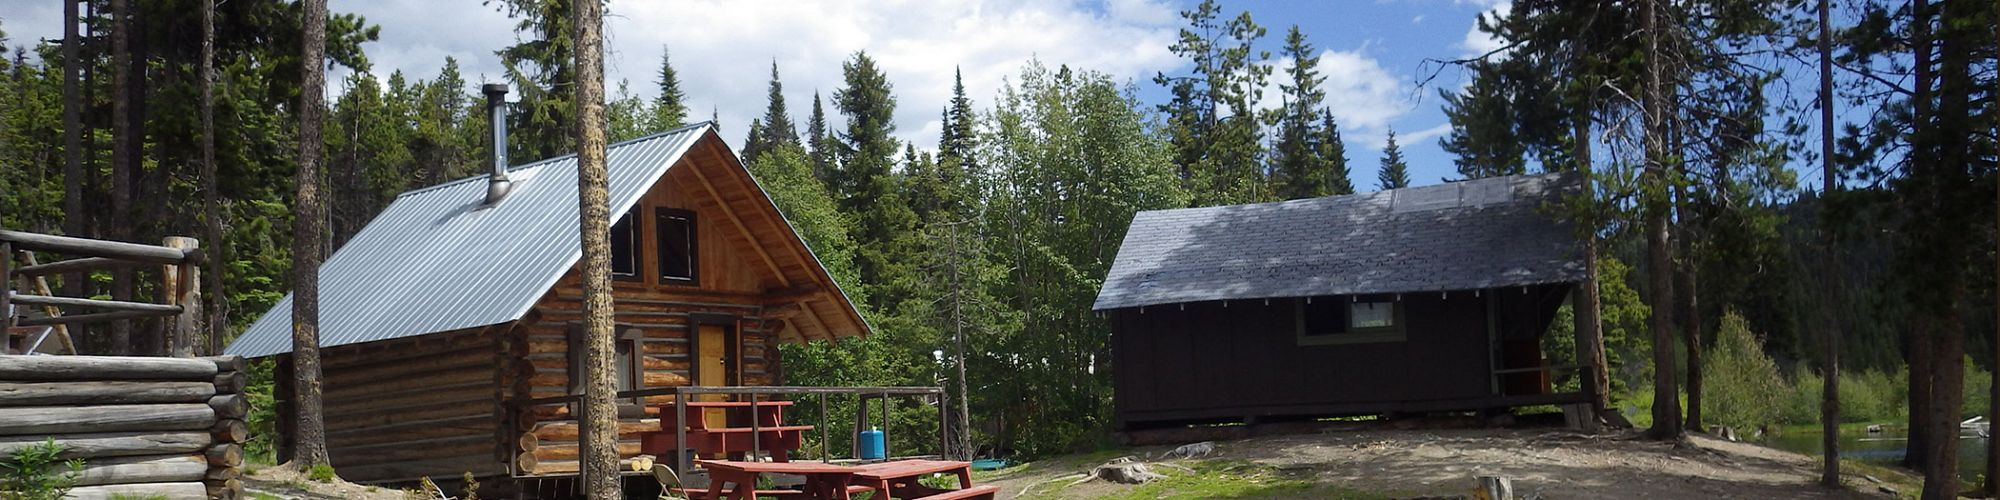 Lakeside cabin camping at headwaters family camp